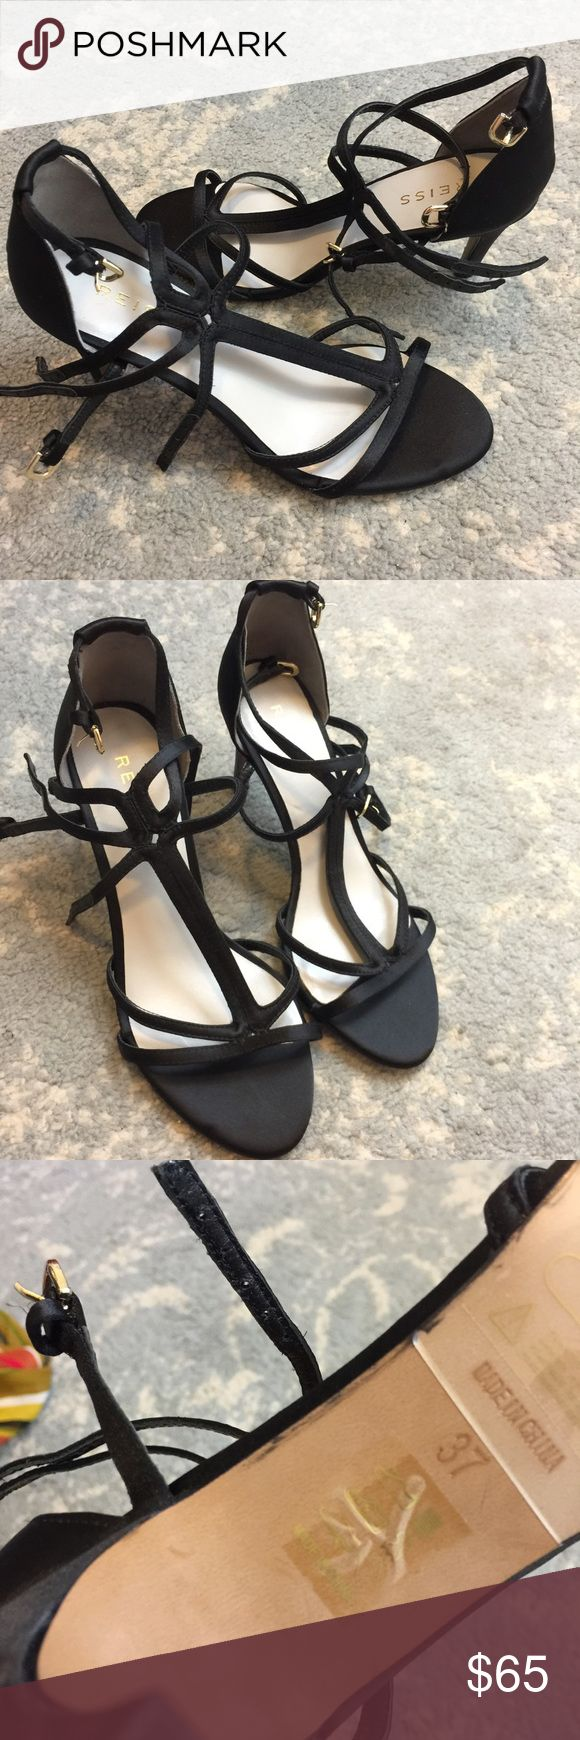 Reiss Black Strappy Buckle Open Toe Heels Reiss Heels gorgeous and new like- no tags never worn outside and size 7. 3 straps and and are ideal for a special occasion and heel isn't super high which is nice! Reiss Shoes